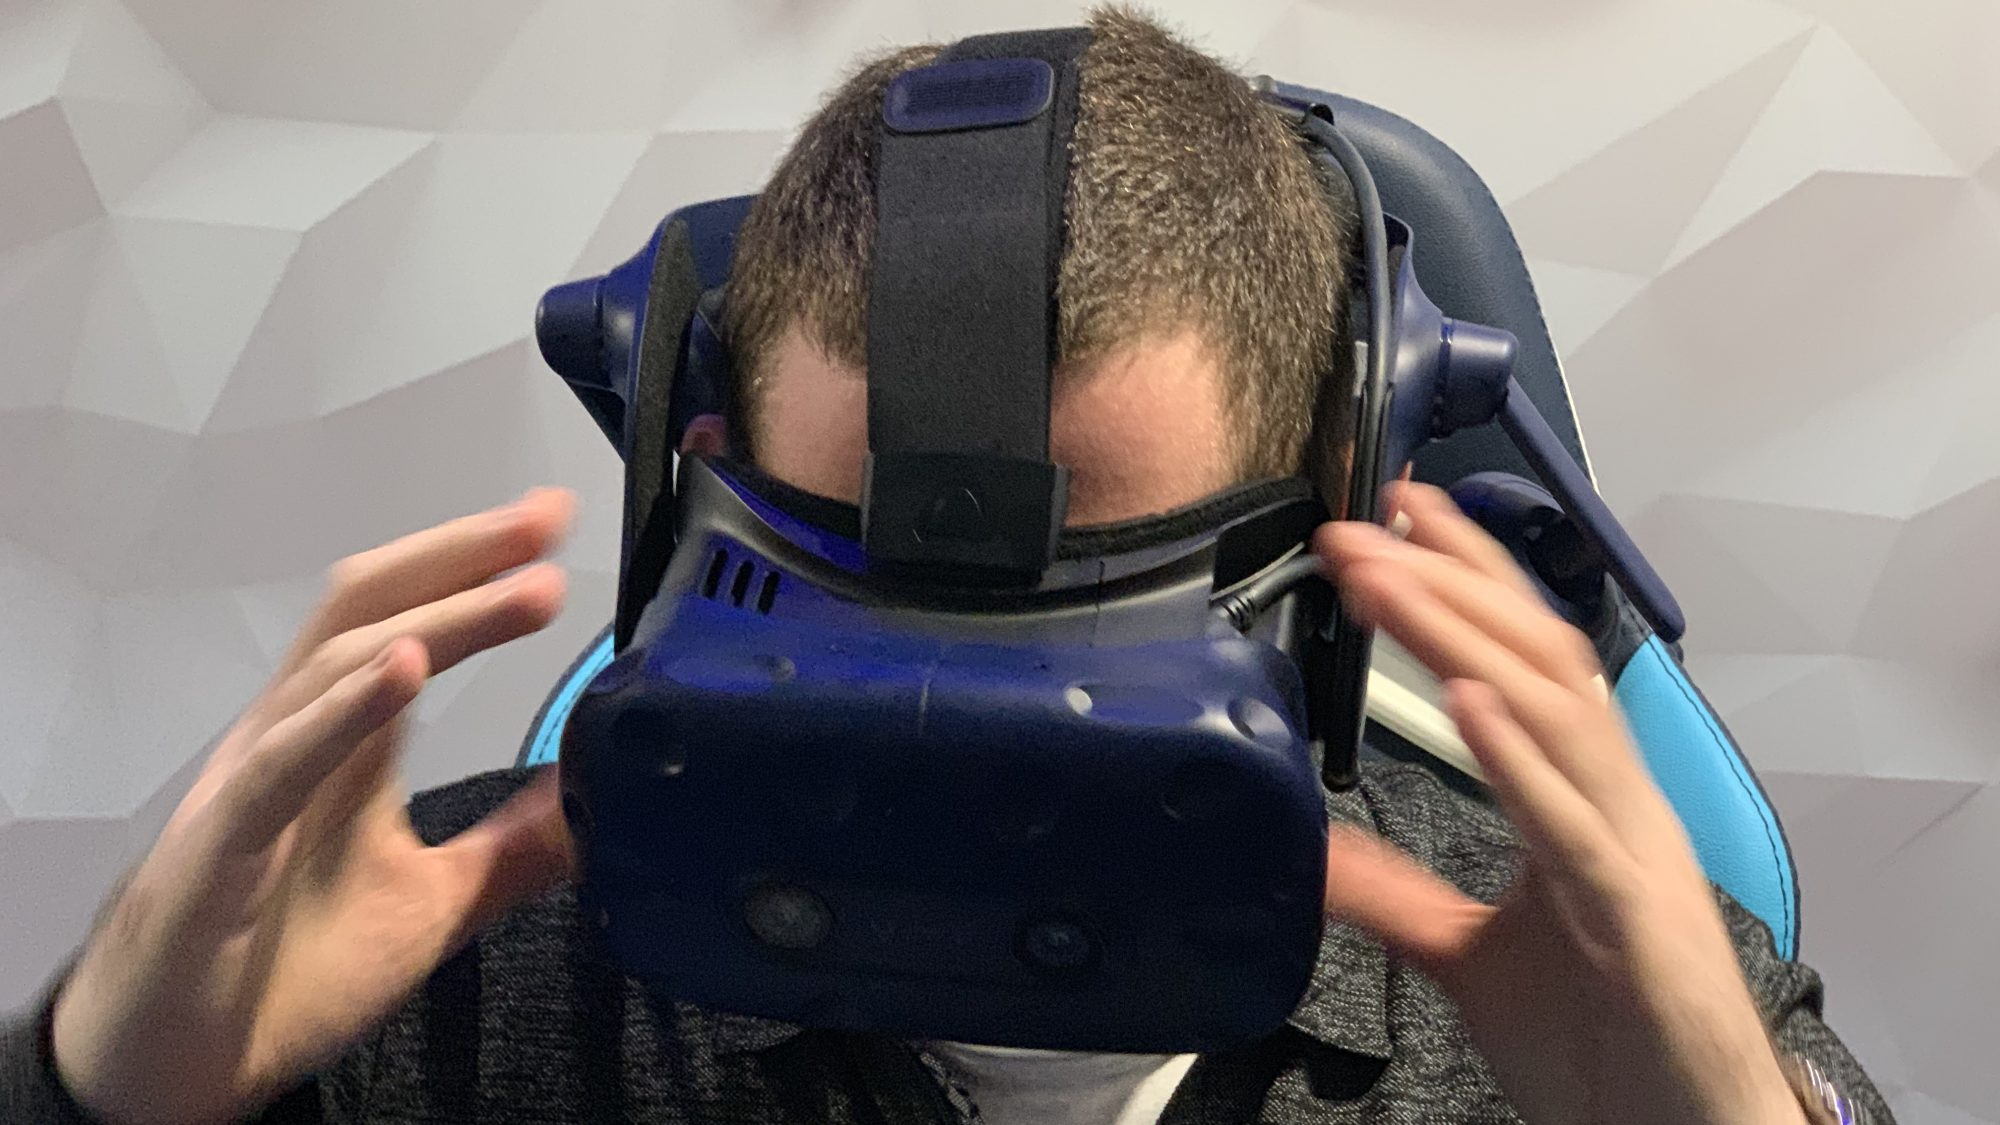 HTC Vive Pro Eye hands-on: Gaze into VR's future with